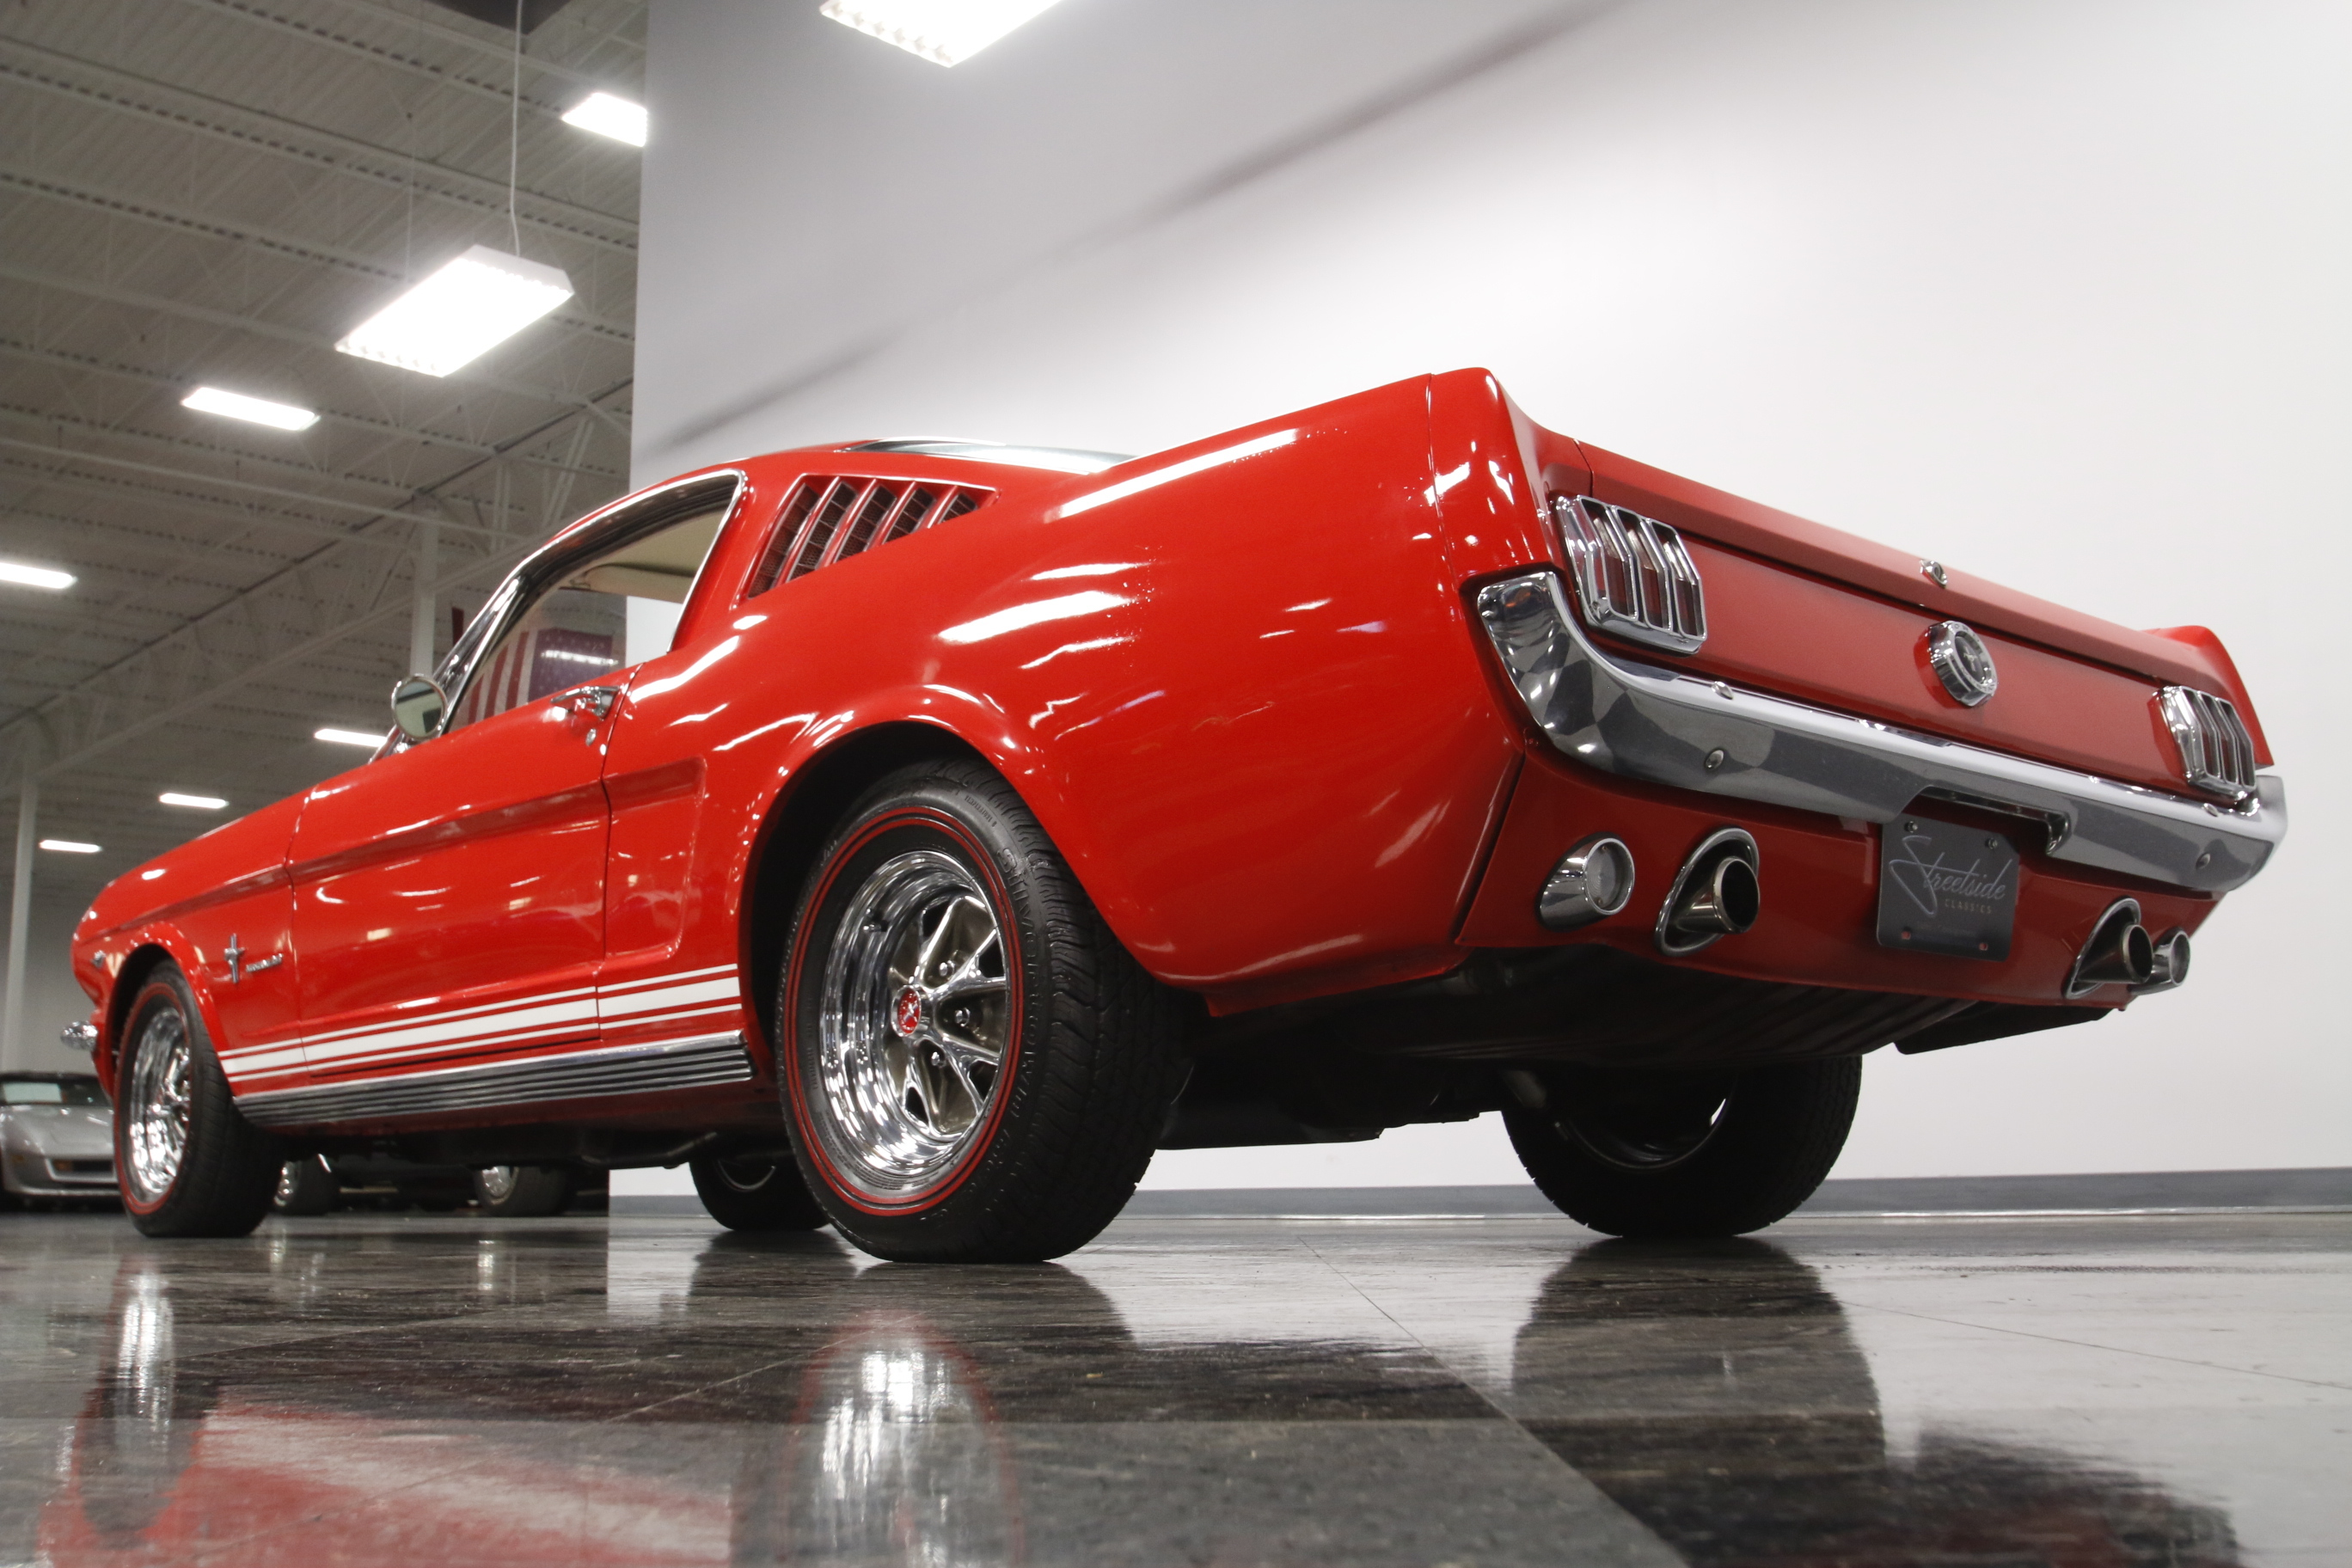 1965 Ford Mustang Fastback: A-CODE, 289 V8, 4SPD TRANS, CLEAN IN/OUT, RUNS & DRIVES GR8, GT-STYLING, NICE!!